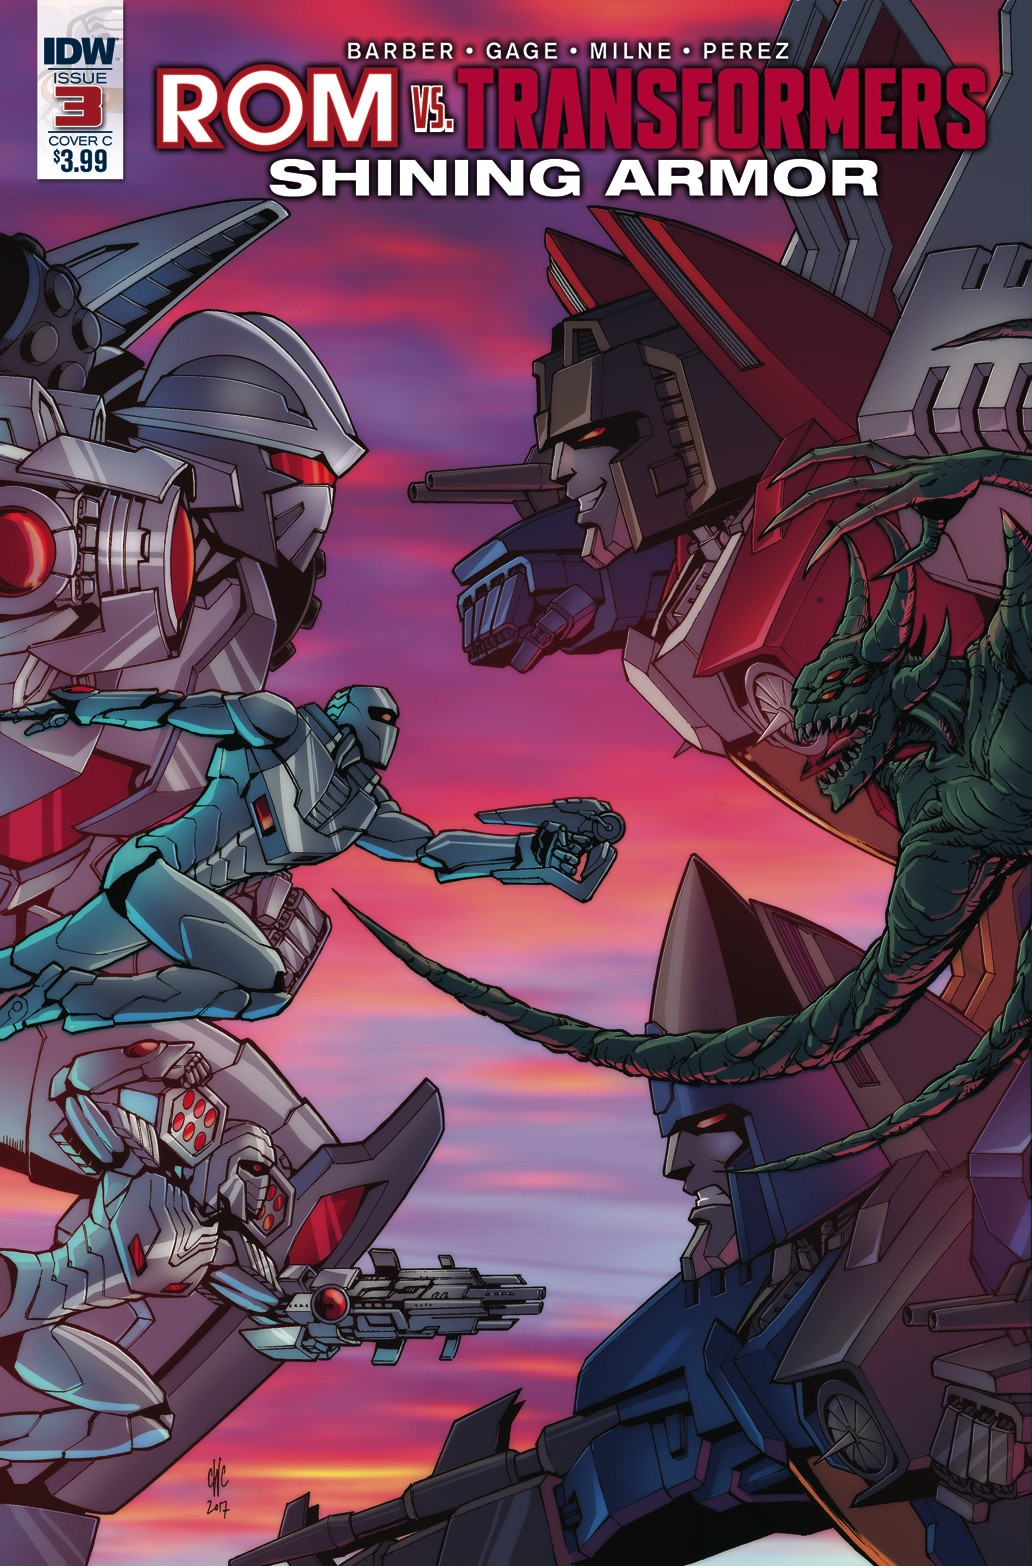 Transformers News: Variant Covers for IDW Rom Vs. Transformers: Shining Armor #3, by Roche/Burcham and Coller/Lafuente